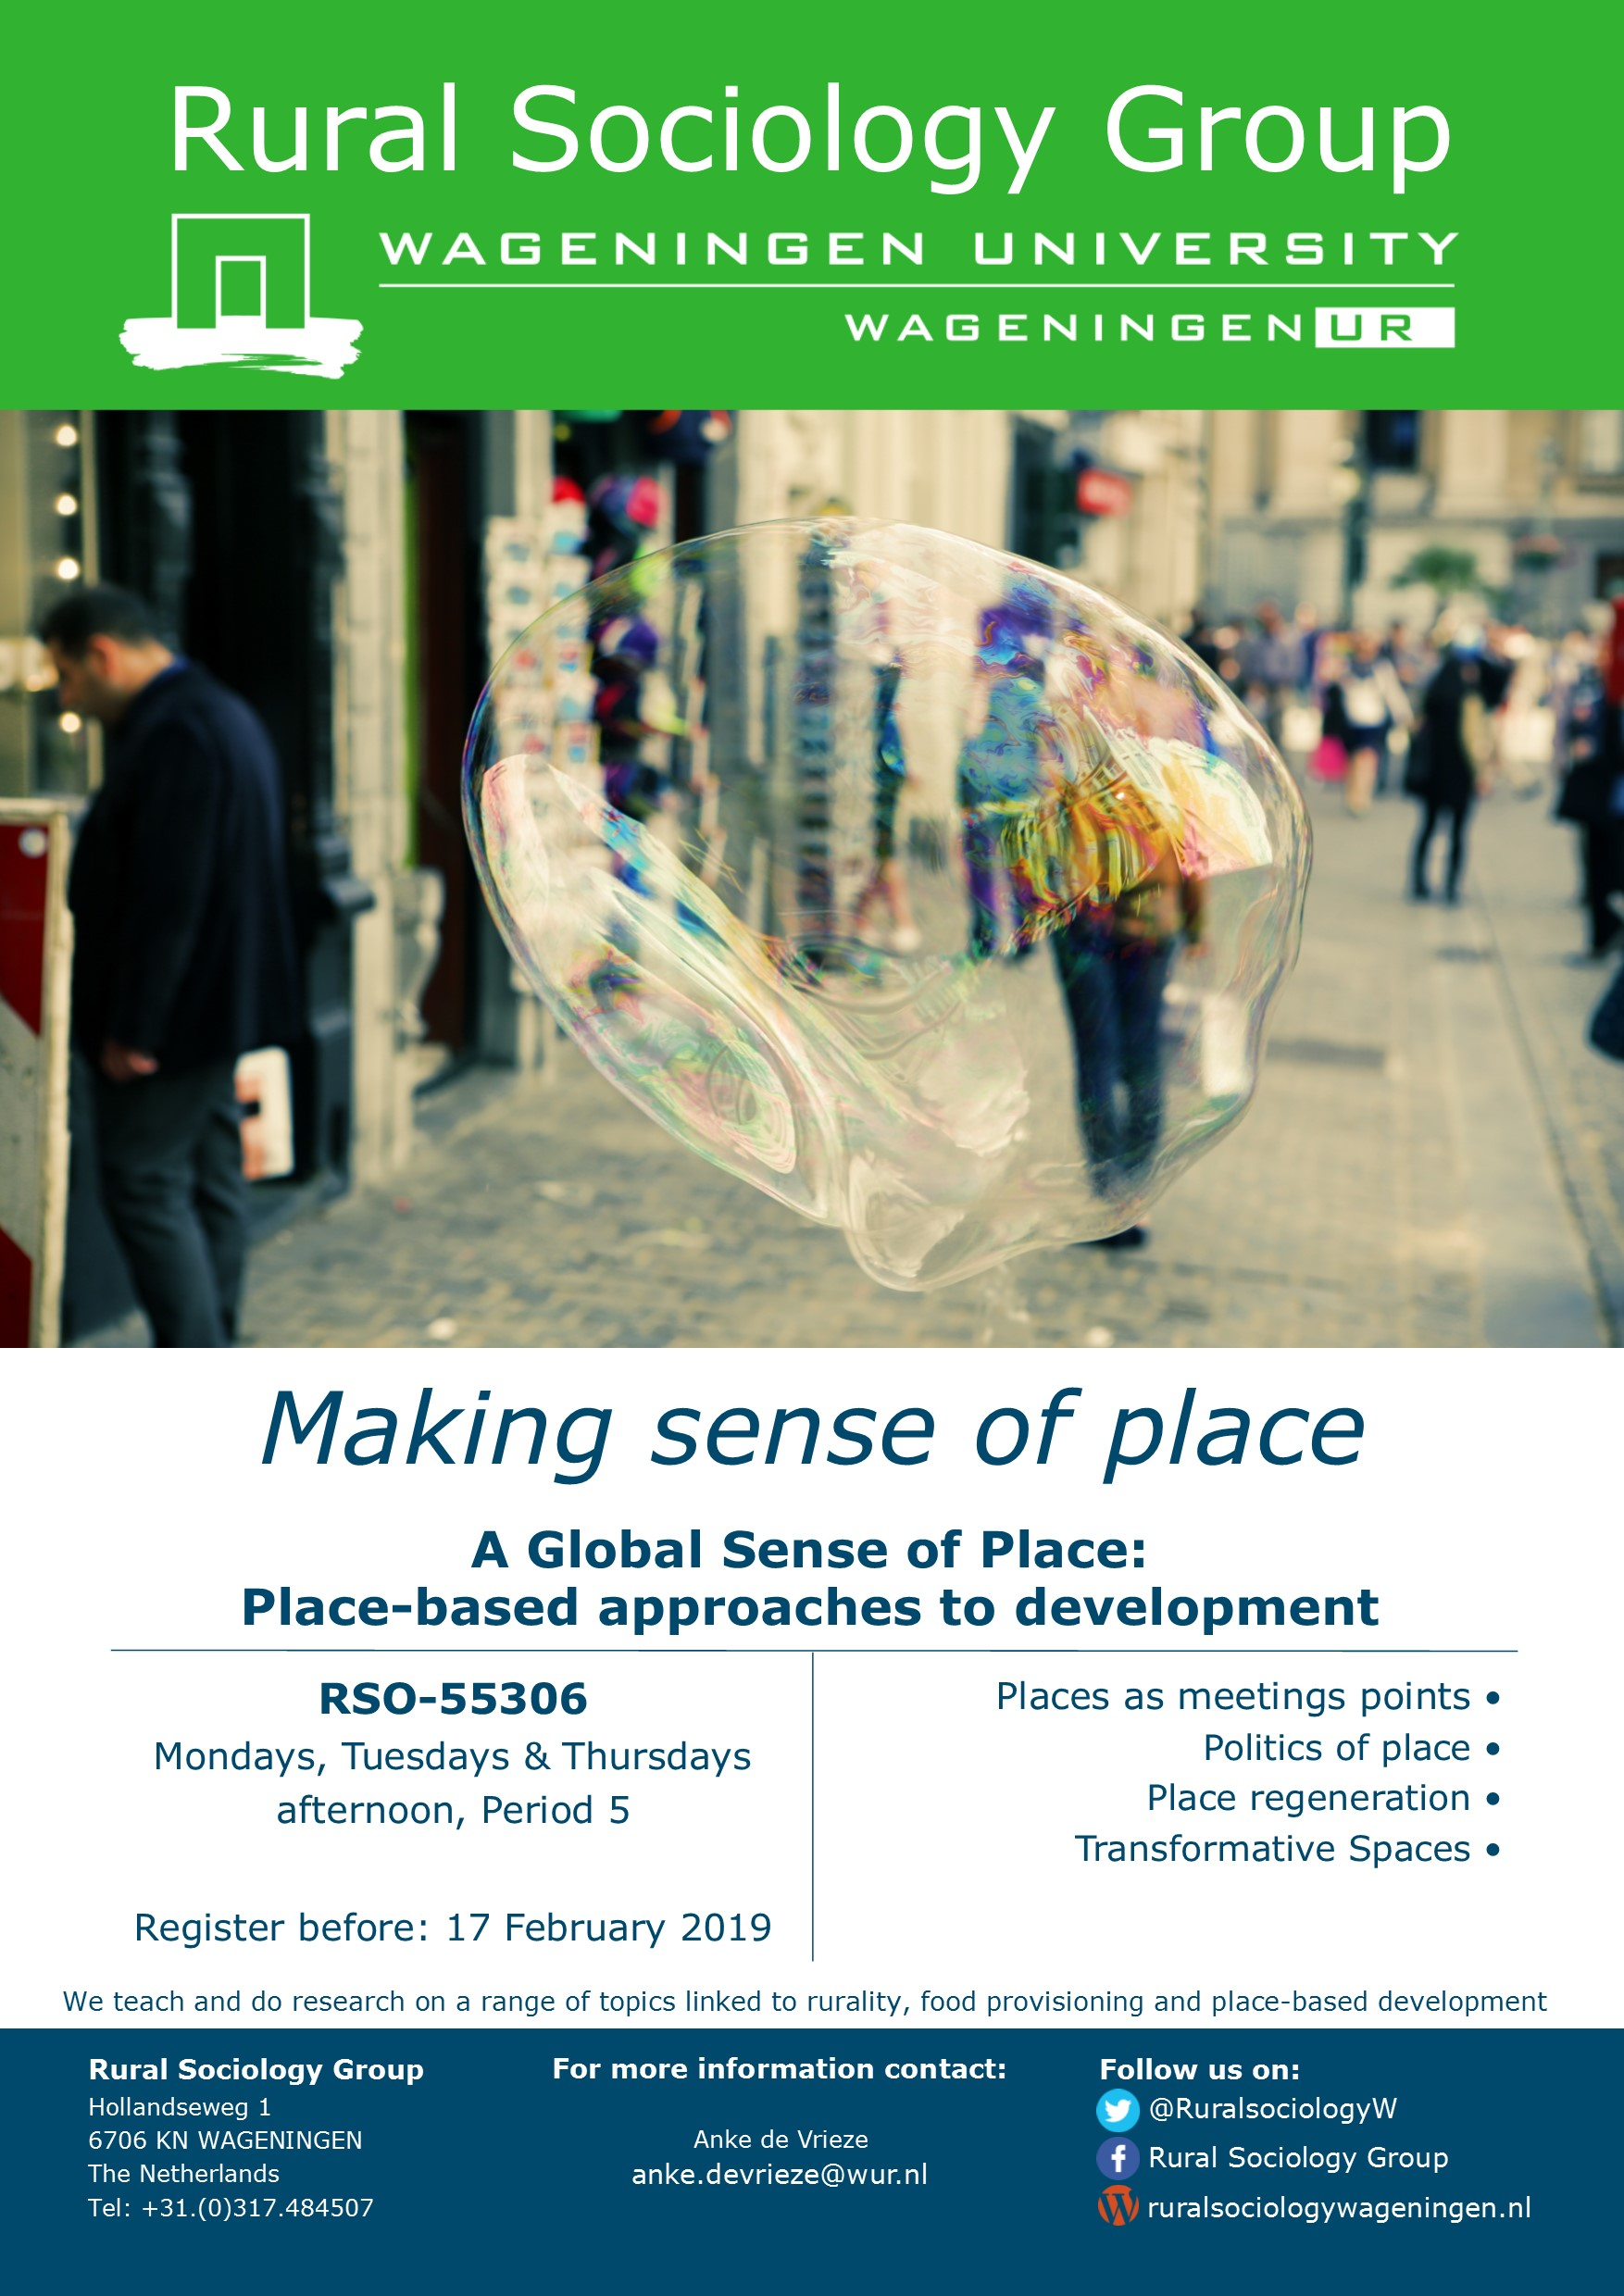 Interested in space & place? Register now for 'A Global